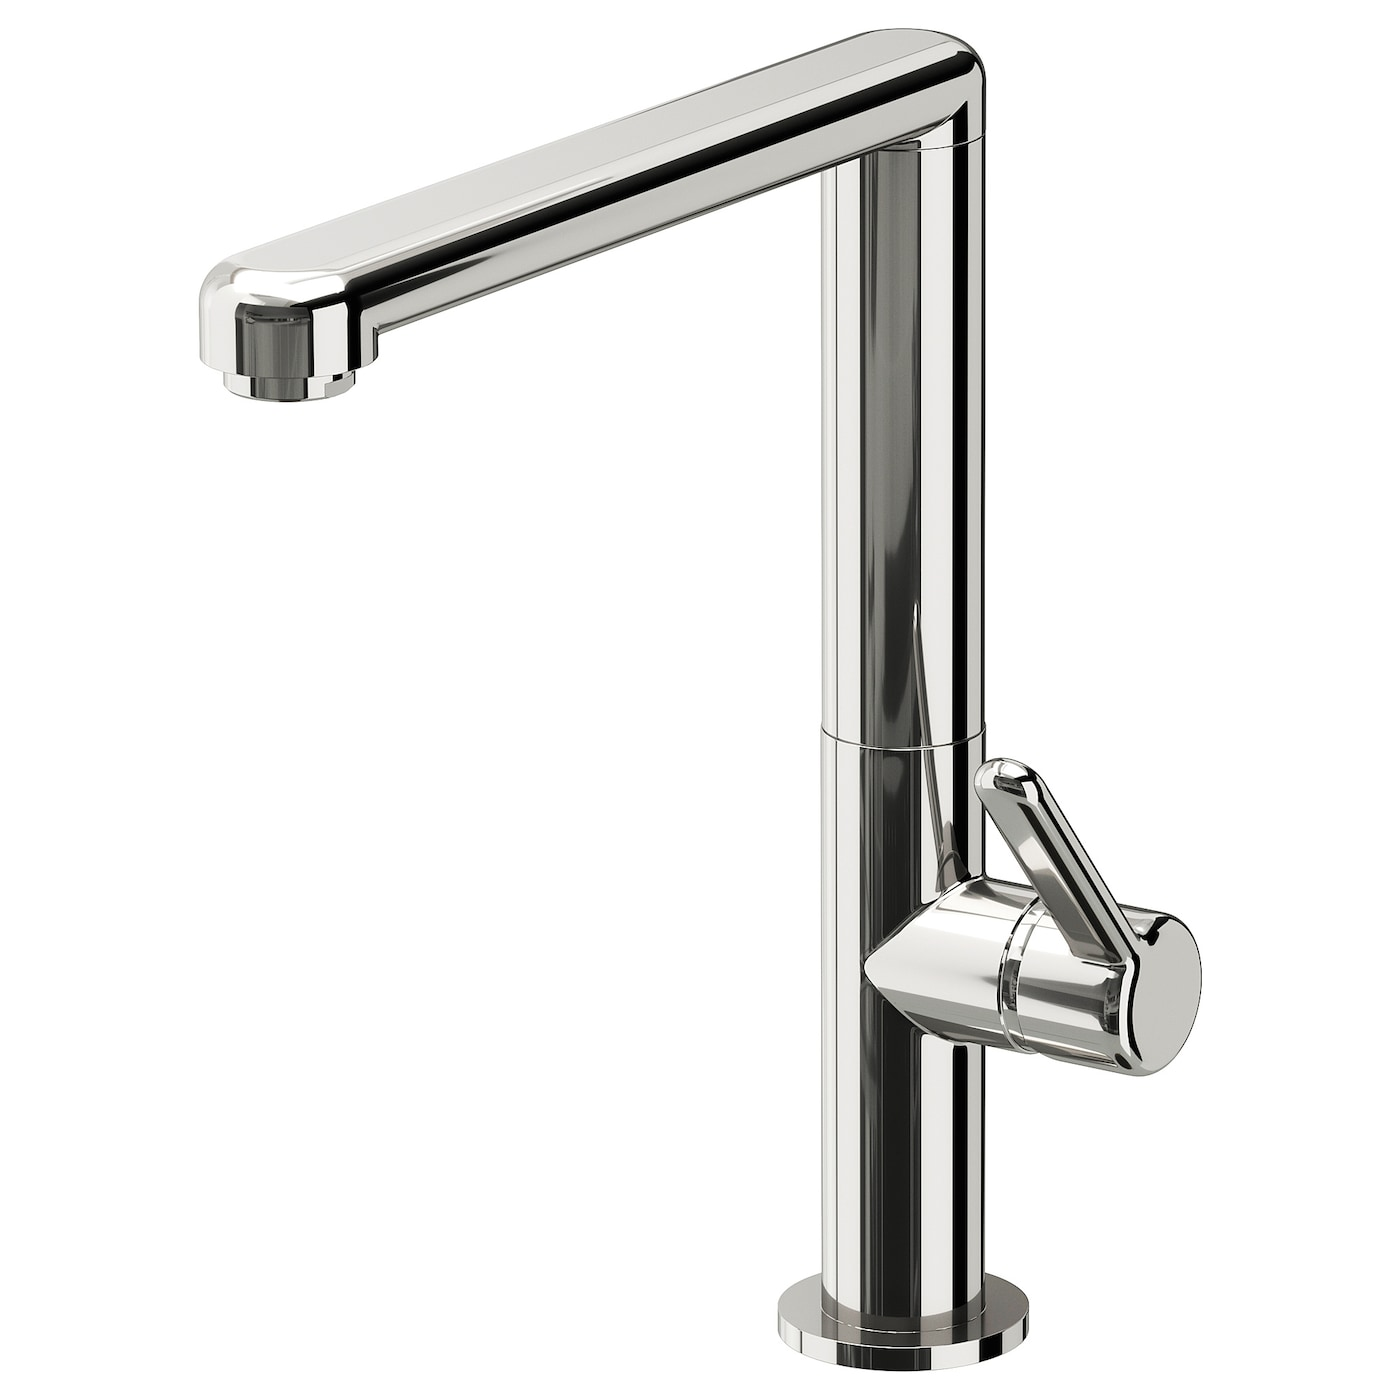 IKEA LÖVSKÄR wash-basin mixer tap with strainer